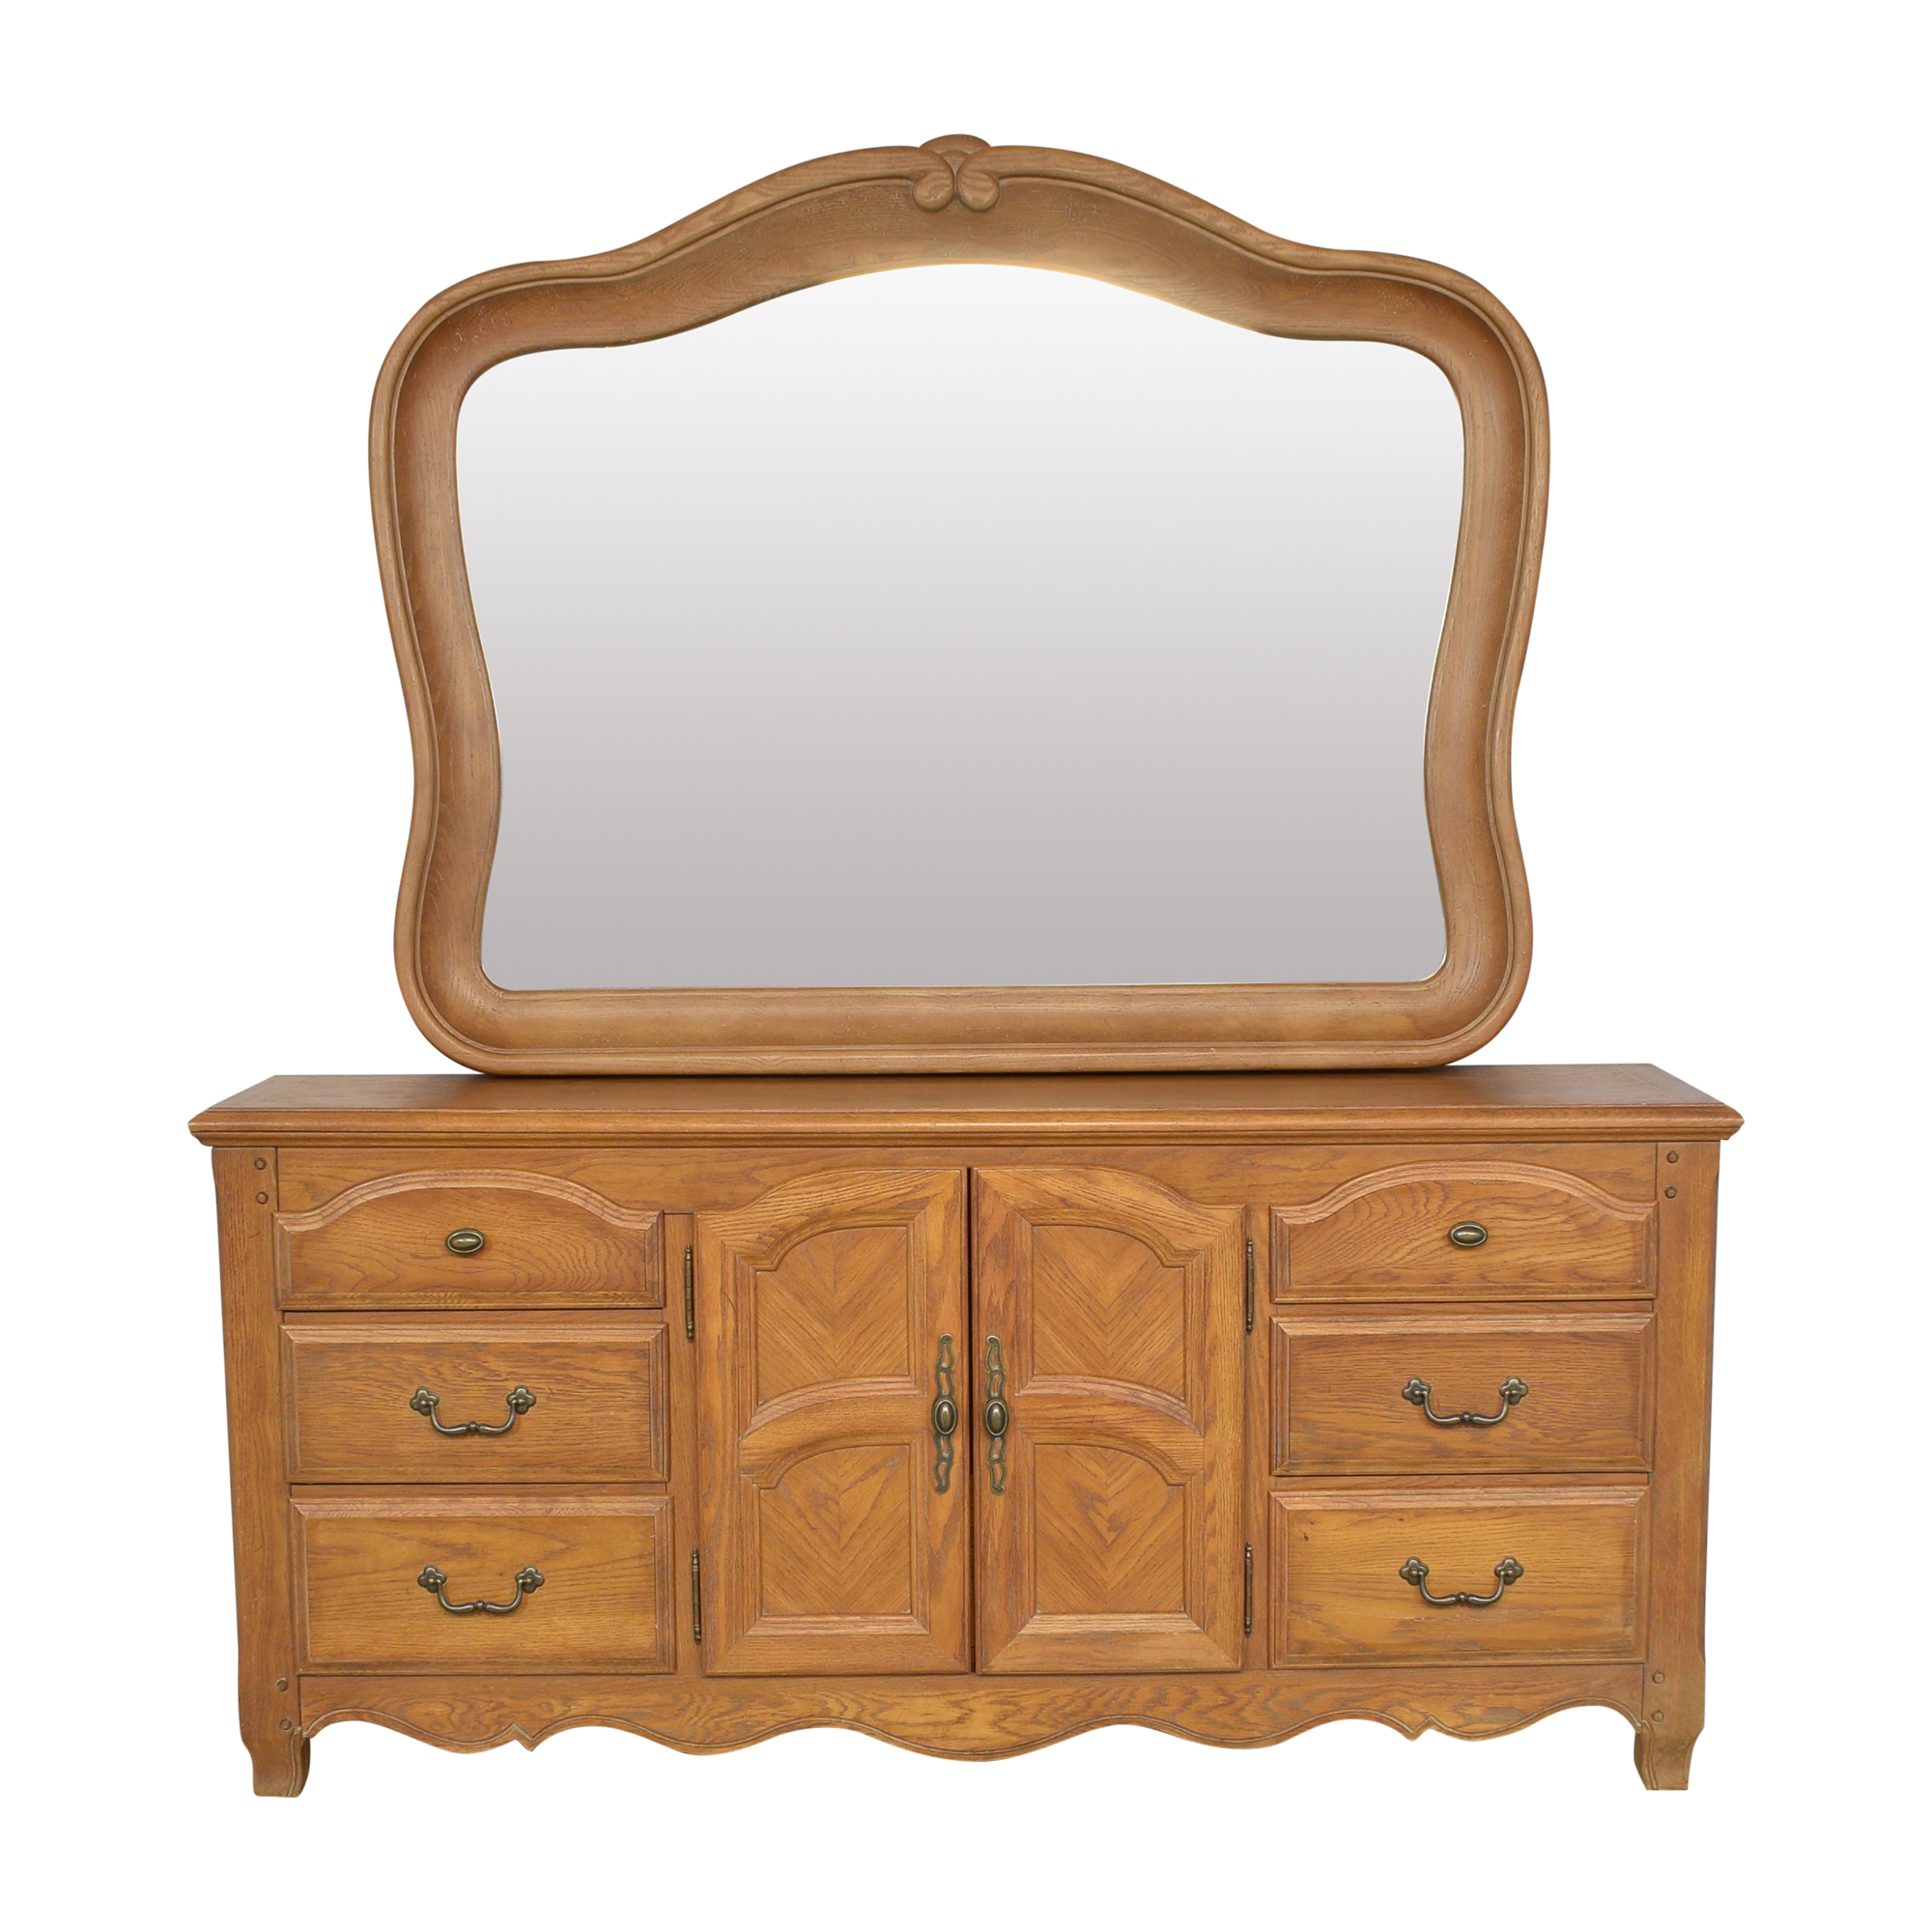 Bernhardt Dresser with Mirror / Dressers